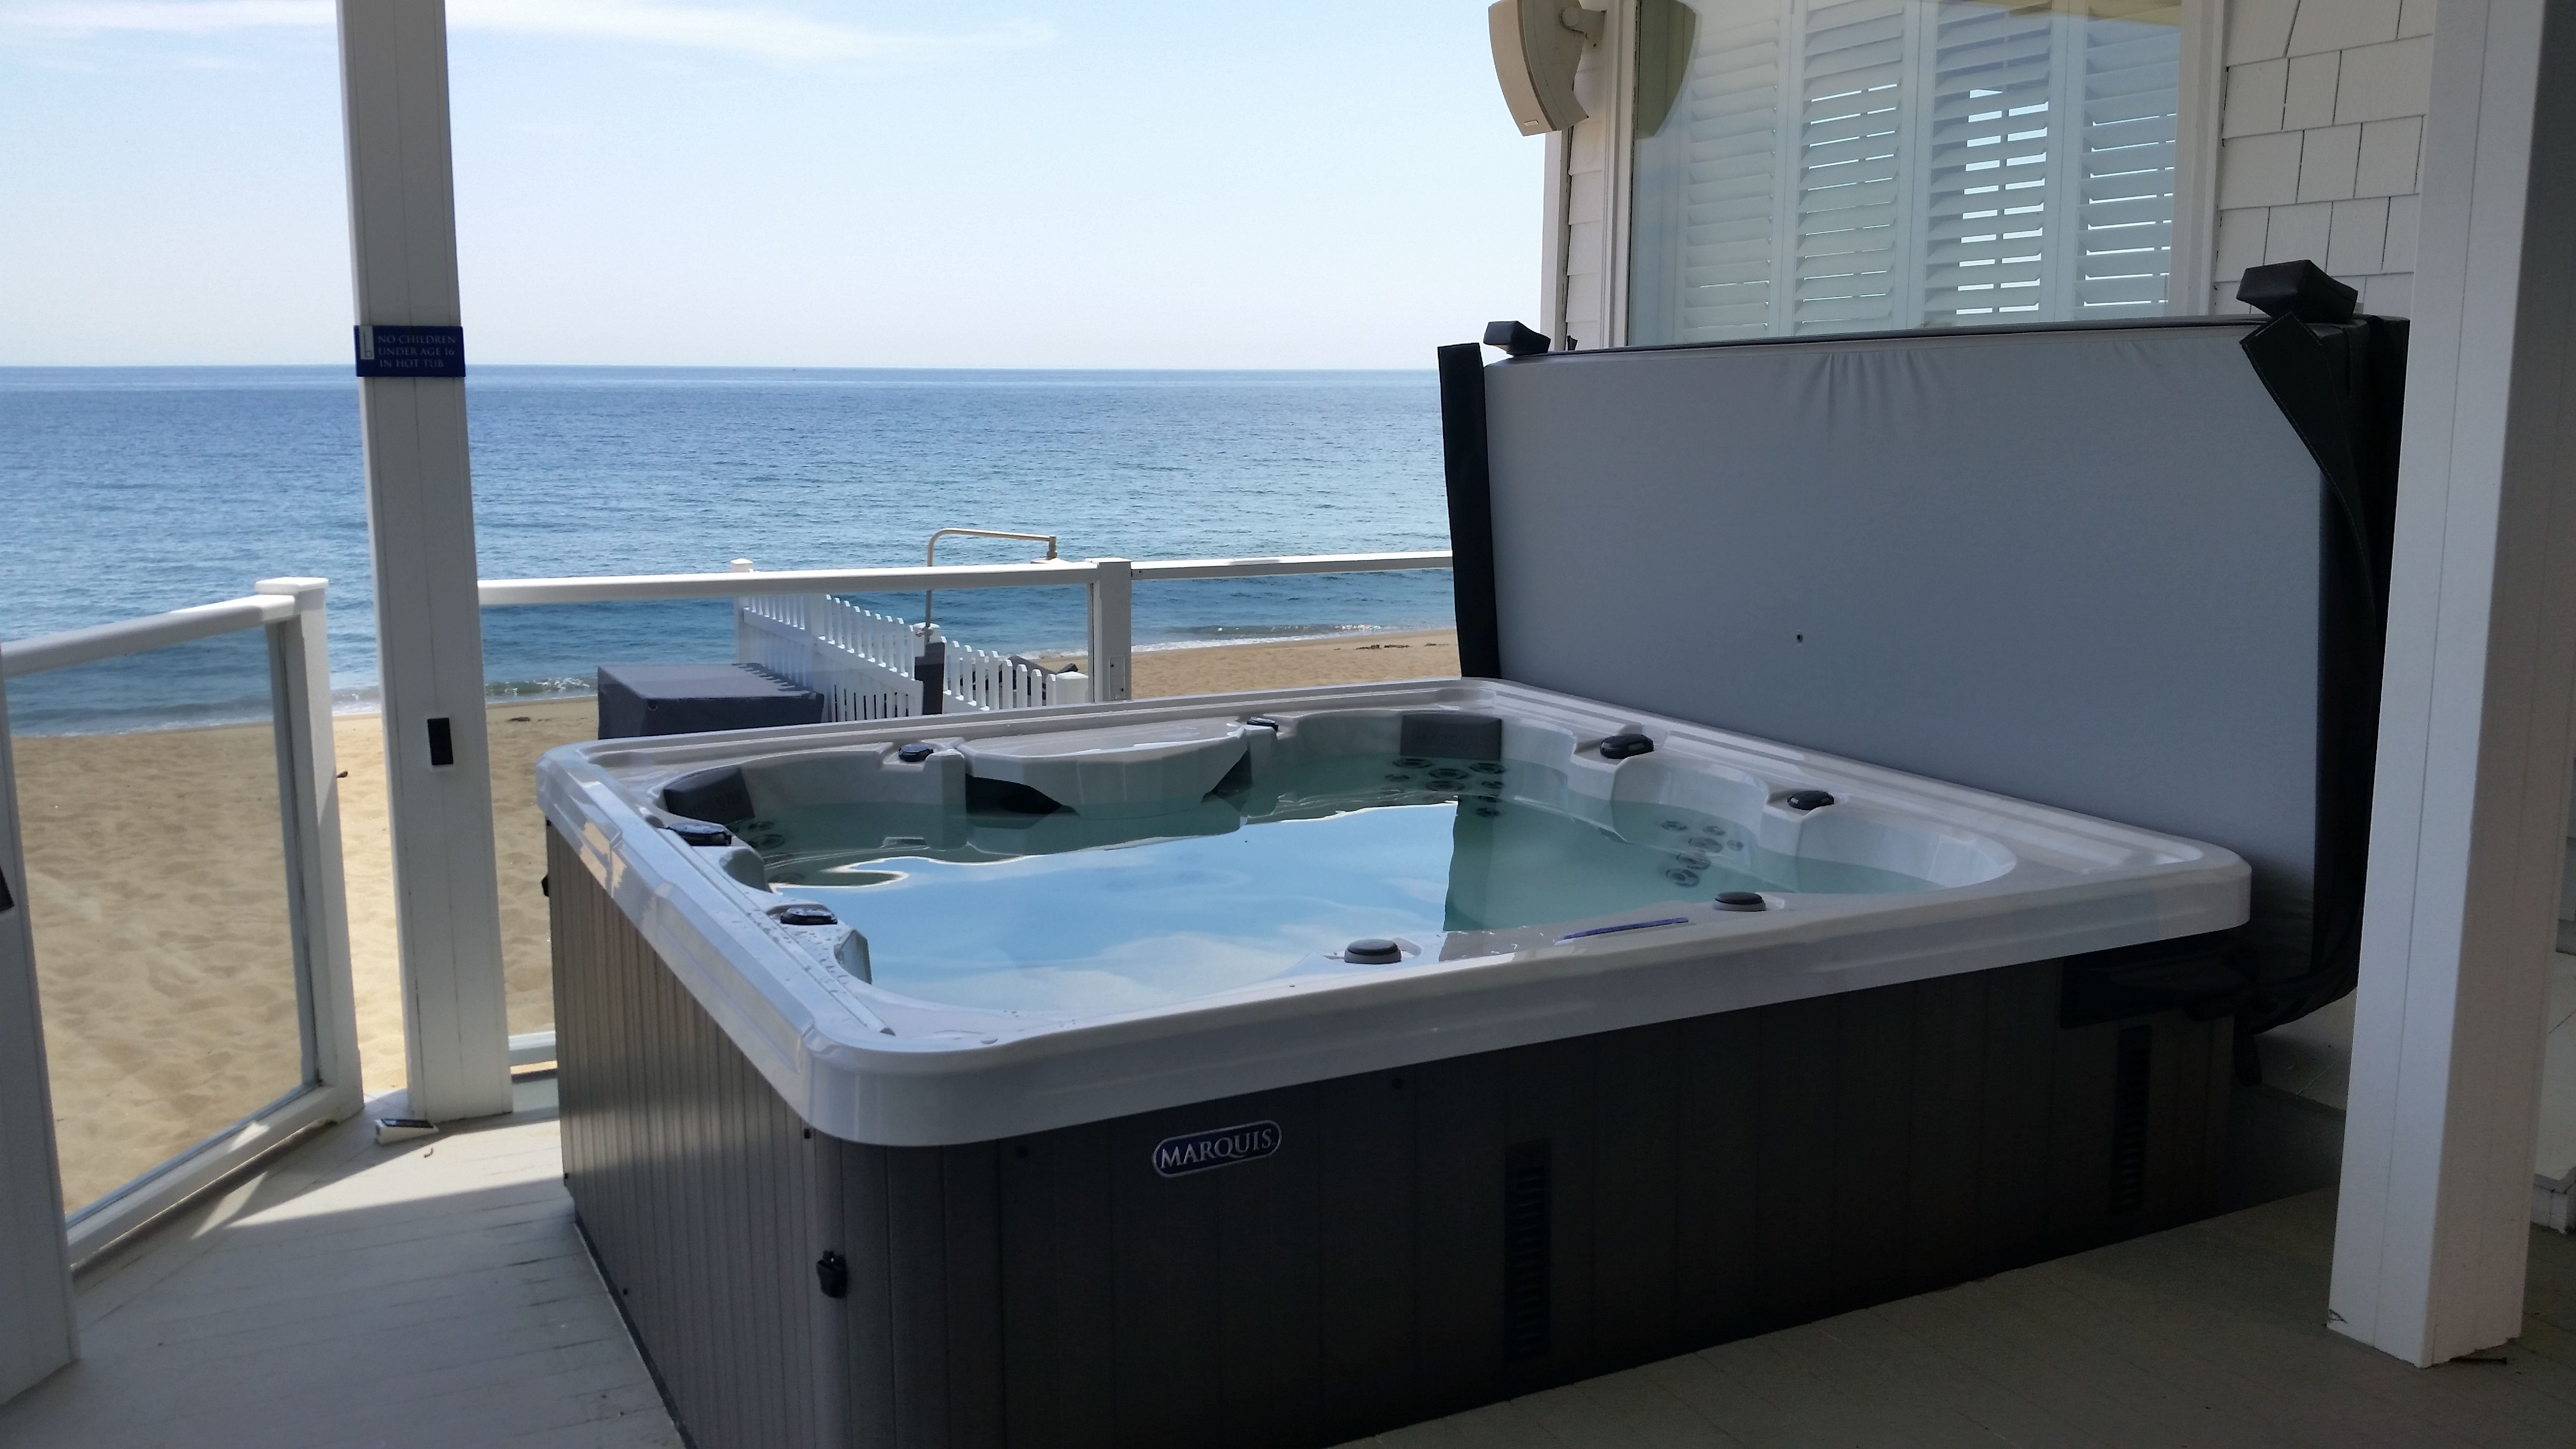 Marquis Spas pushes new technology in the hot tub industry | Our Hot ...